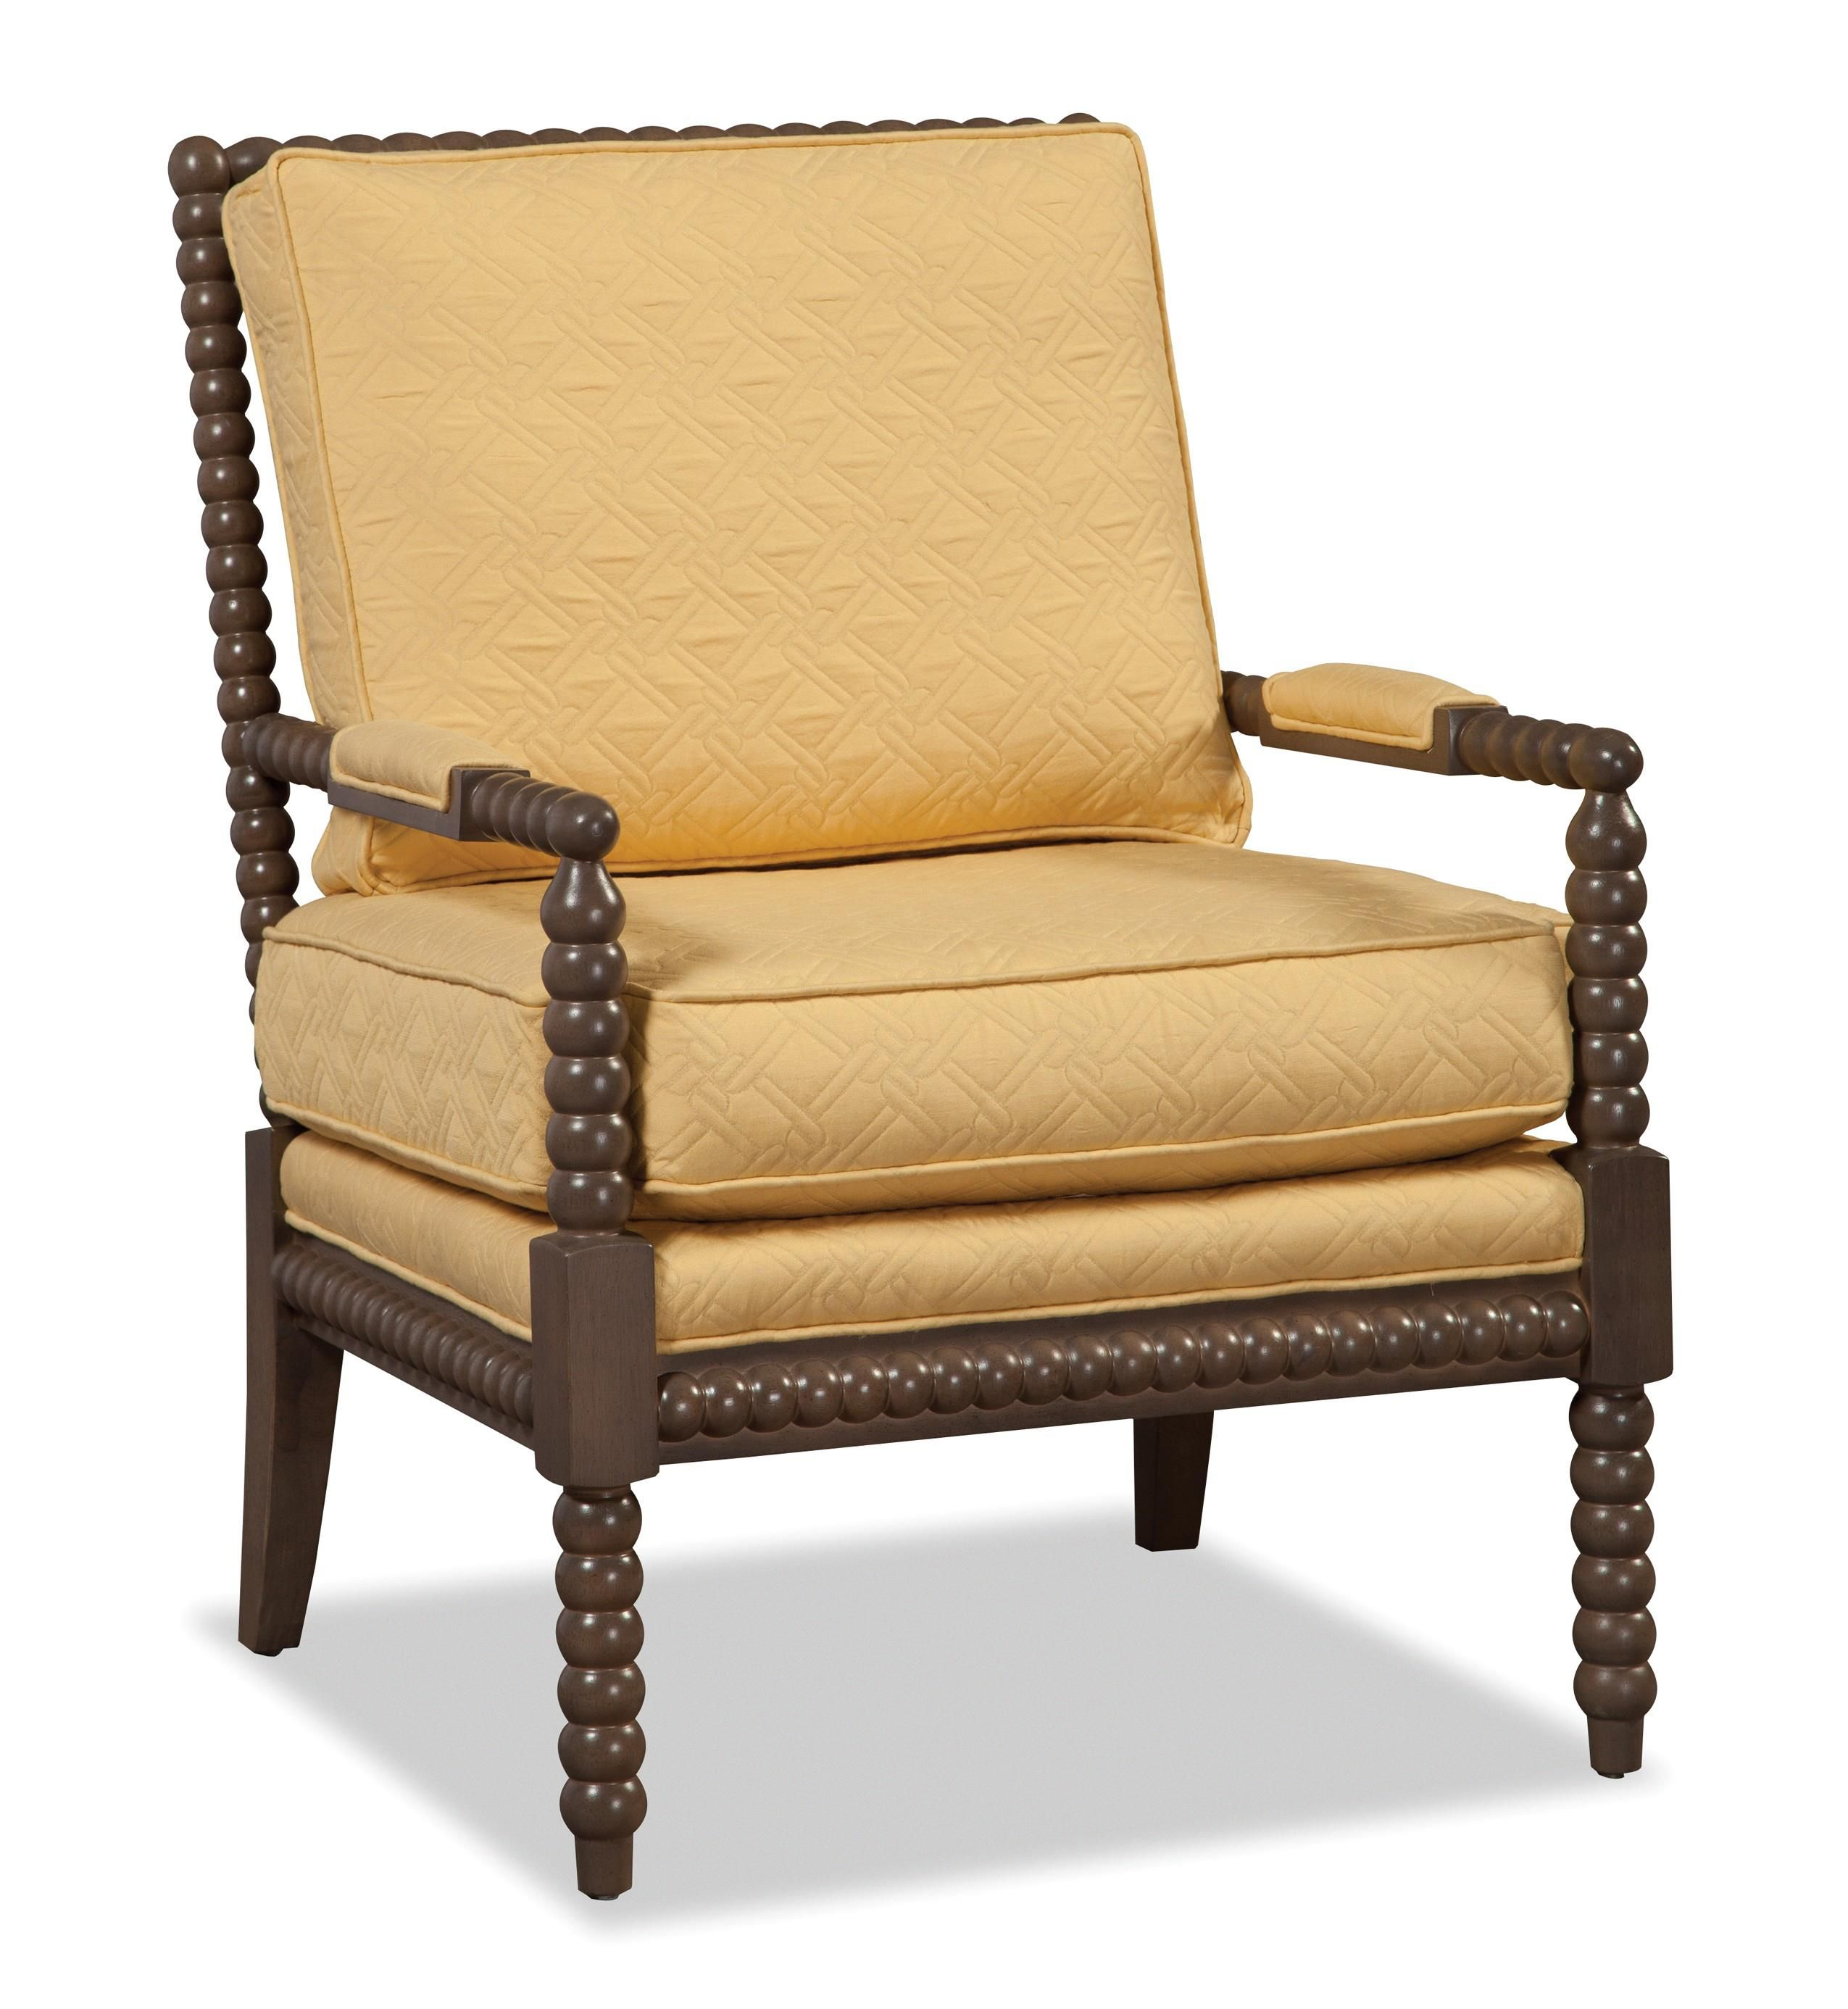 accent chairs exposed wood chair by craftmaster - Wood Frame Accent Chairs